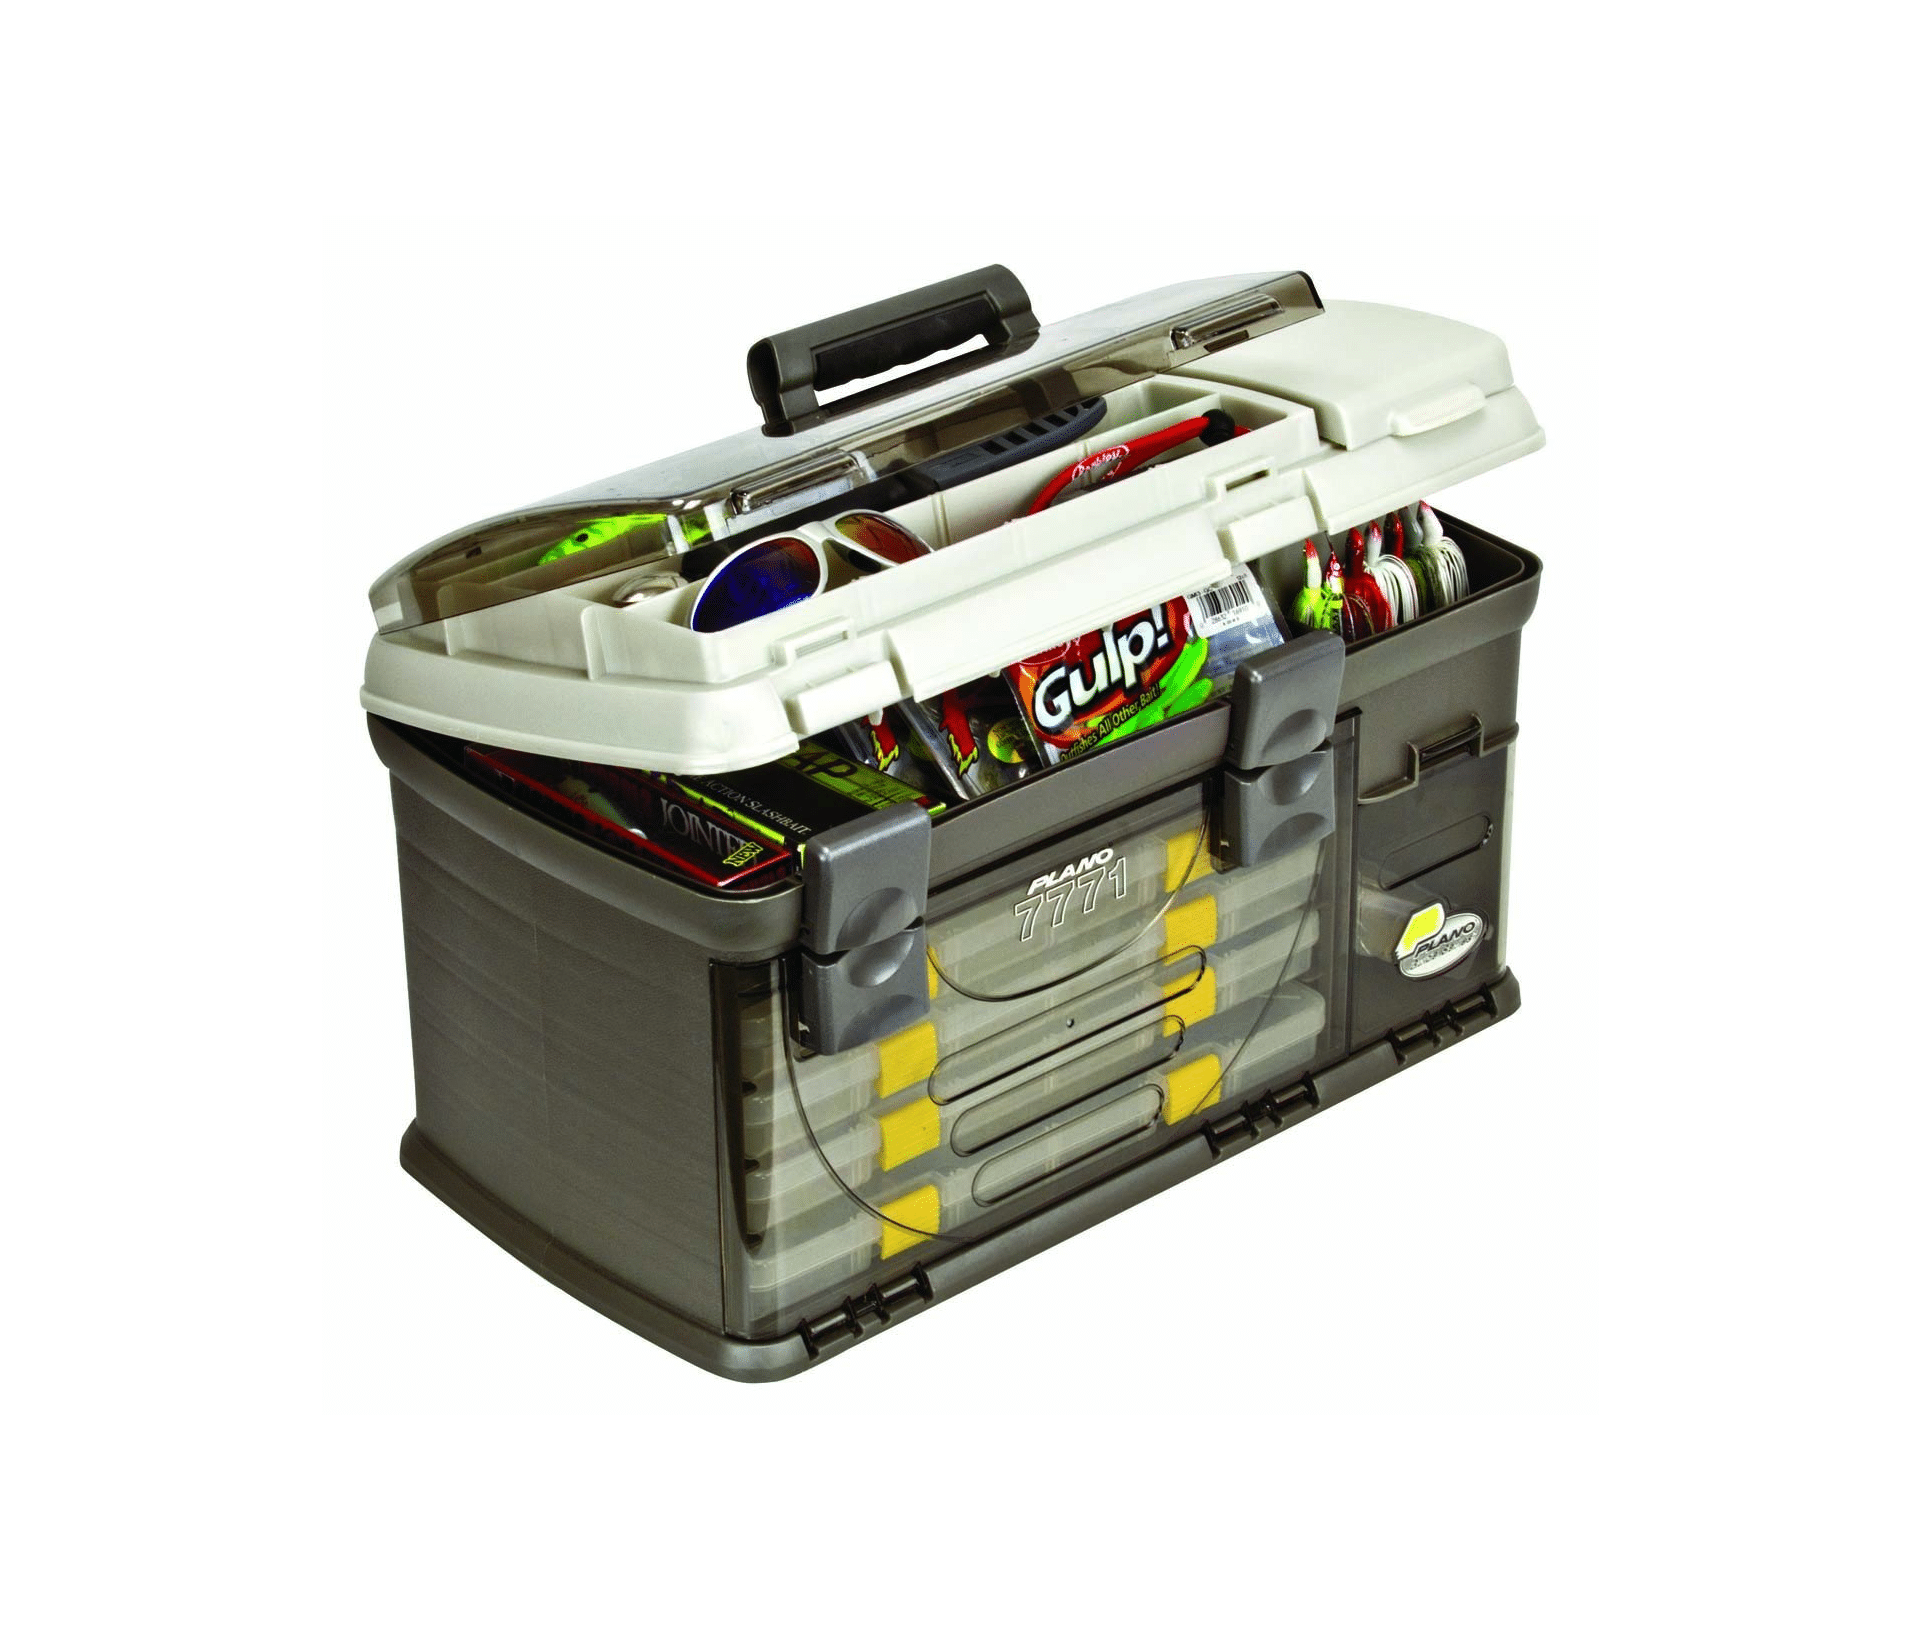 Plano 7771-01 Guide Series Tackle System